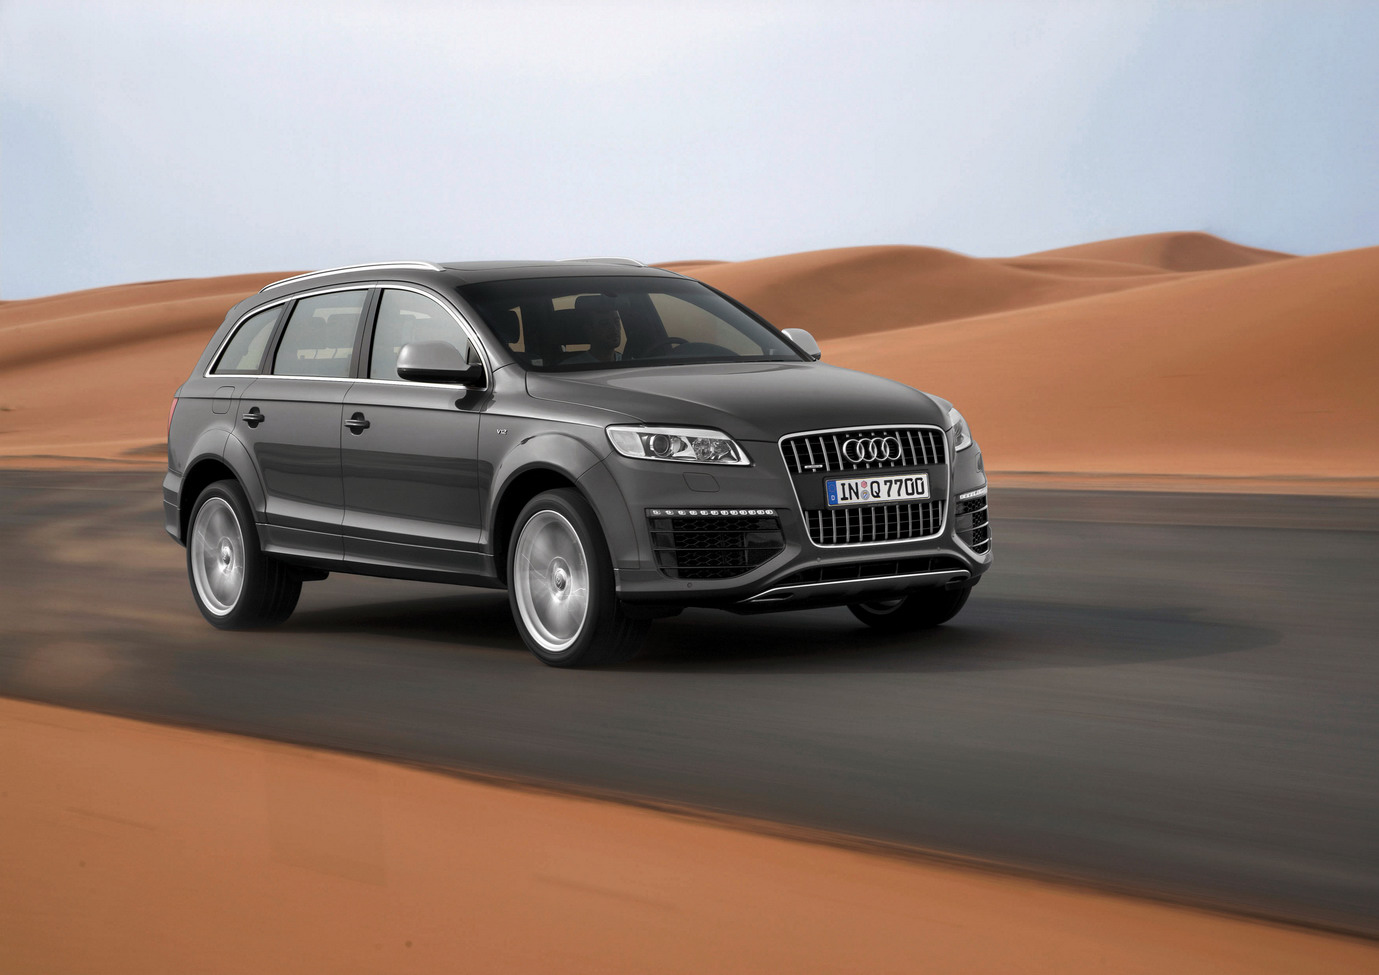 2018 Audi Q7 V12 Tdi Car Photos Catalog 2018